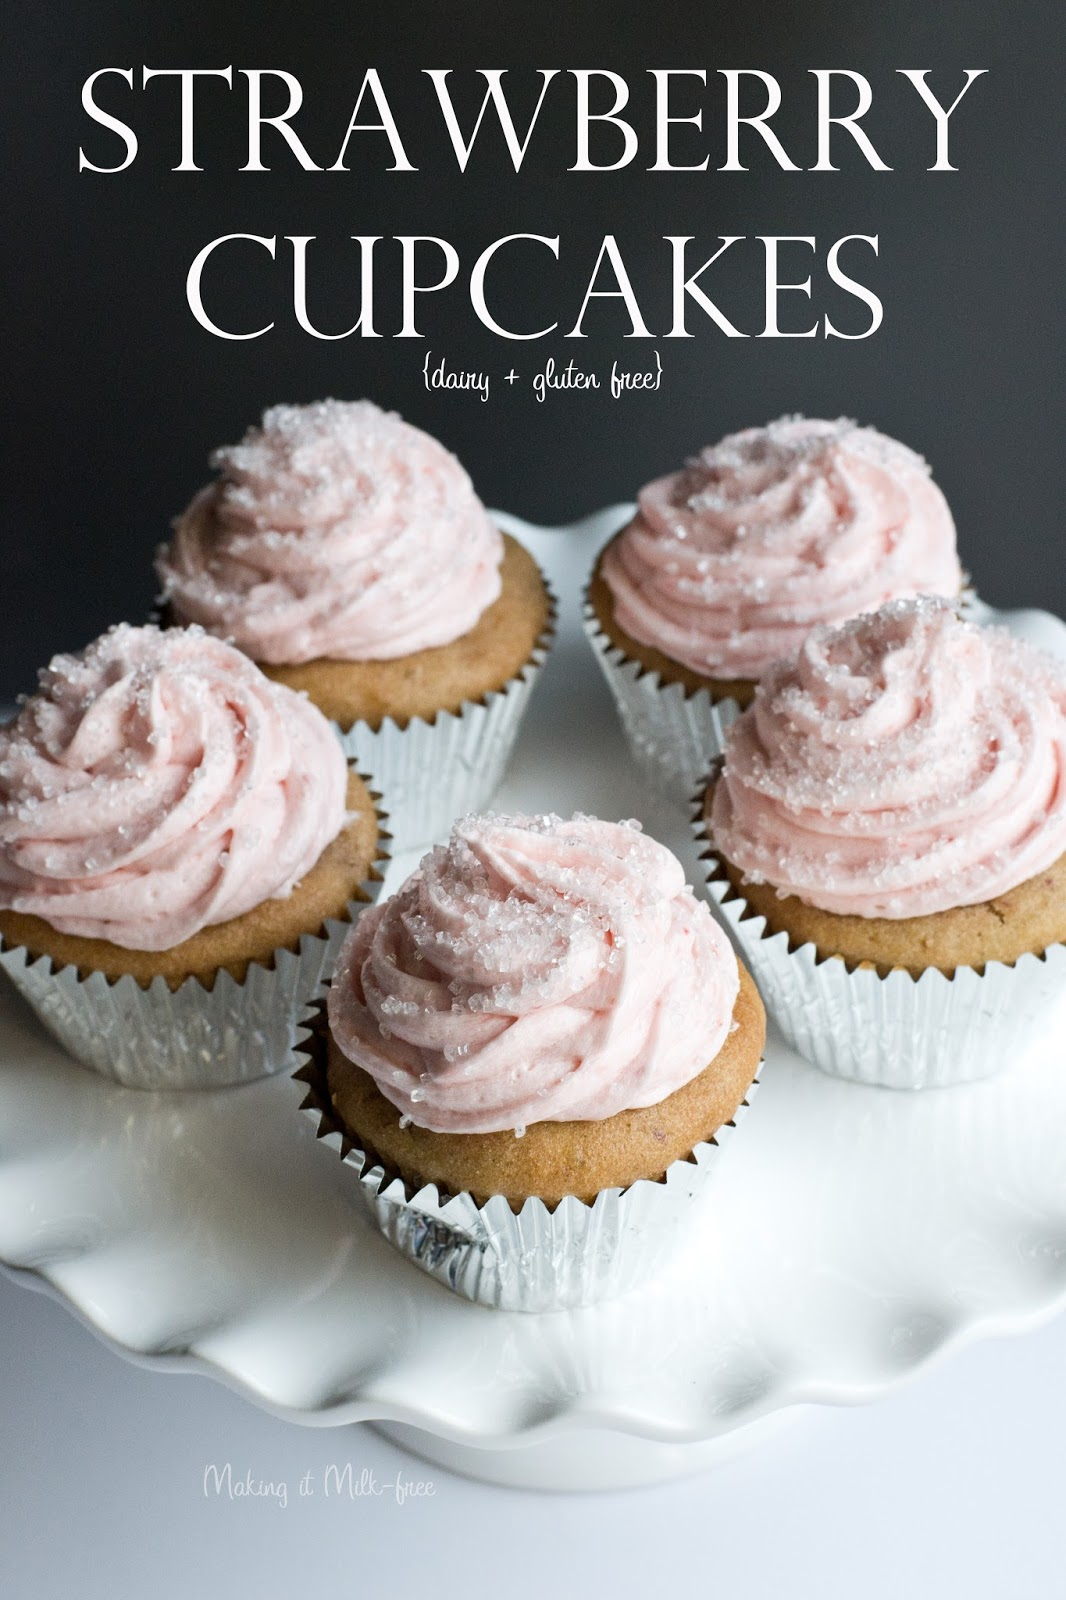 Strawberry Cupcakes with Strawberry Buttercream {dairy + gluten free} by Making it Milk-free